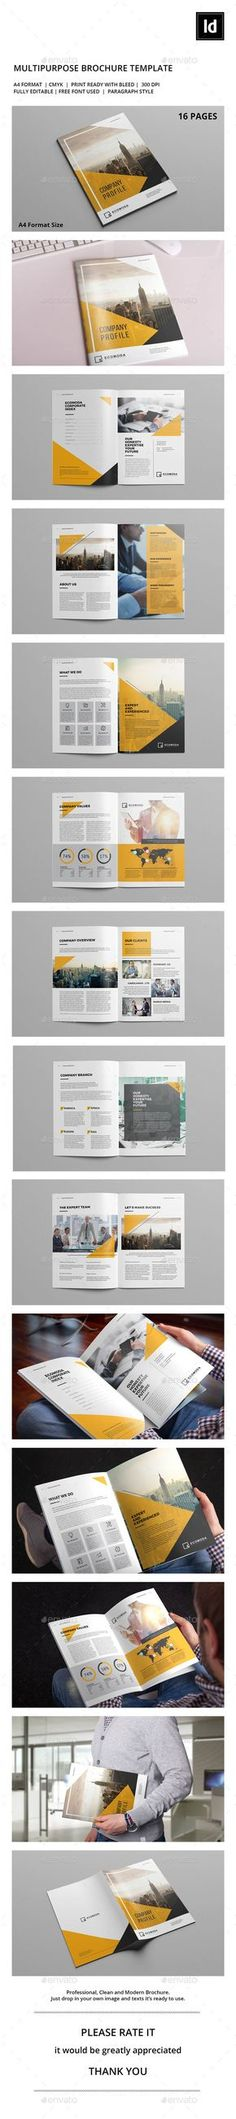 Company profile template indesign indd inspire for work ecomoda company profile pronofoot35fo Gallery